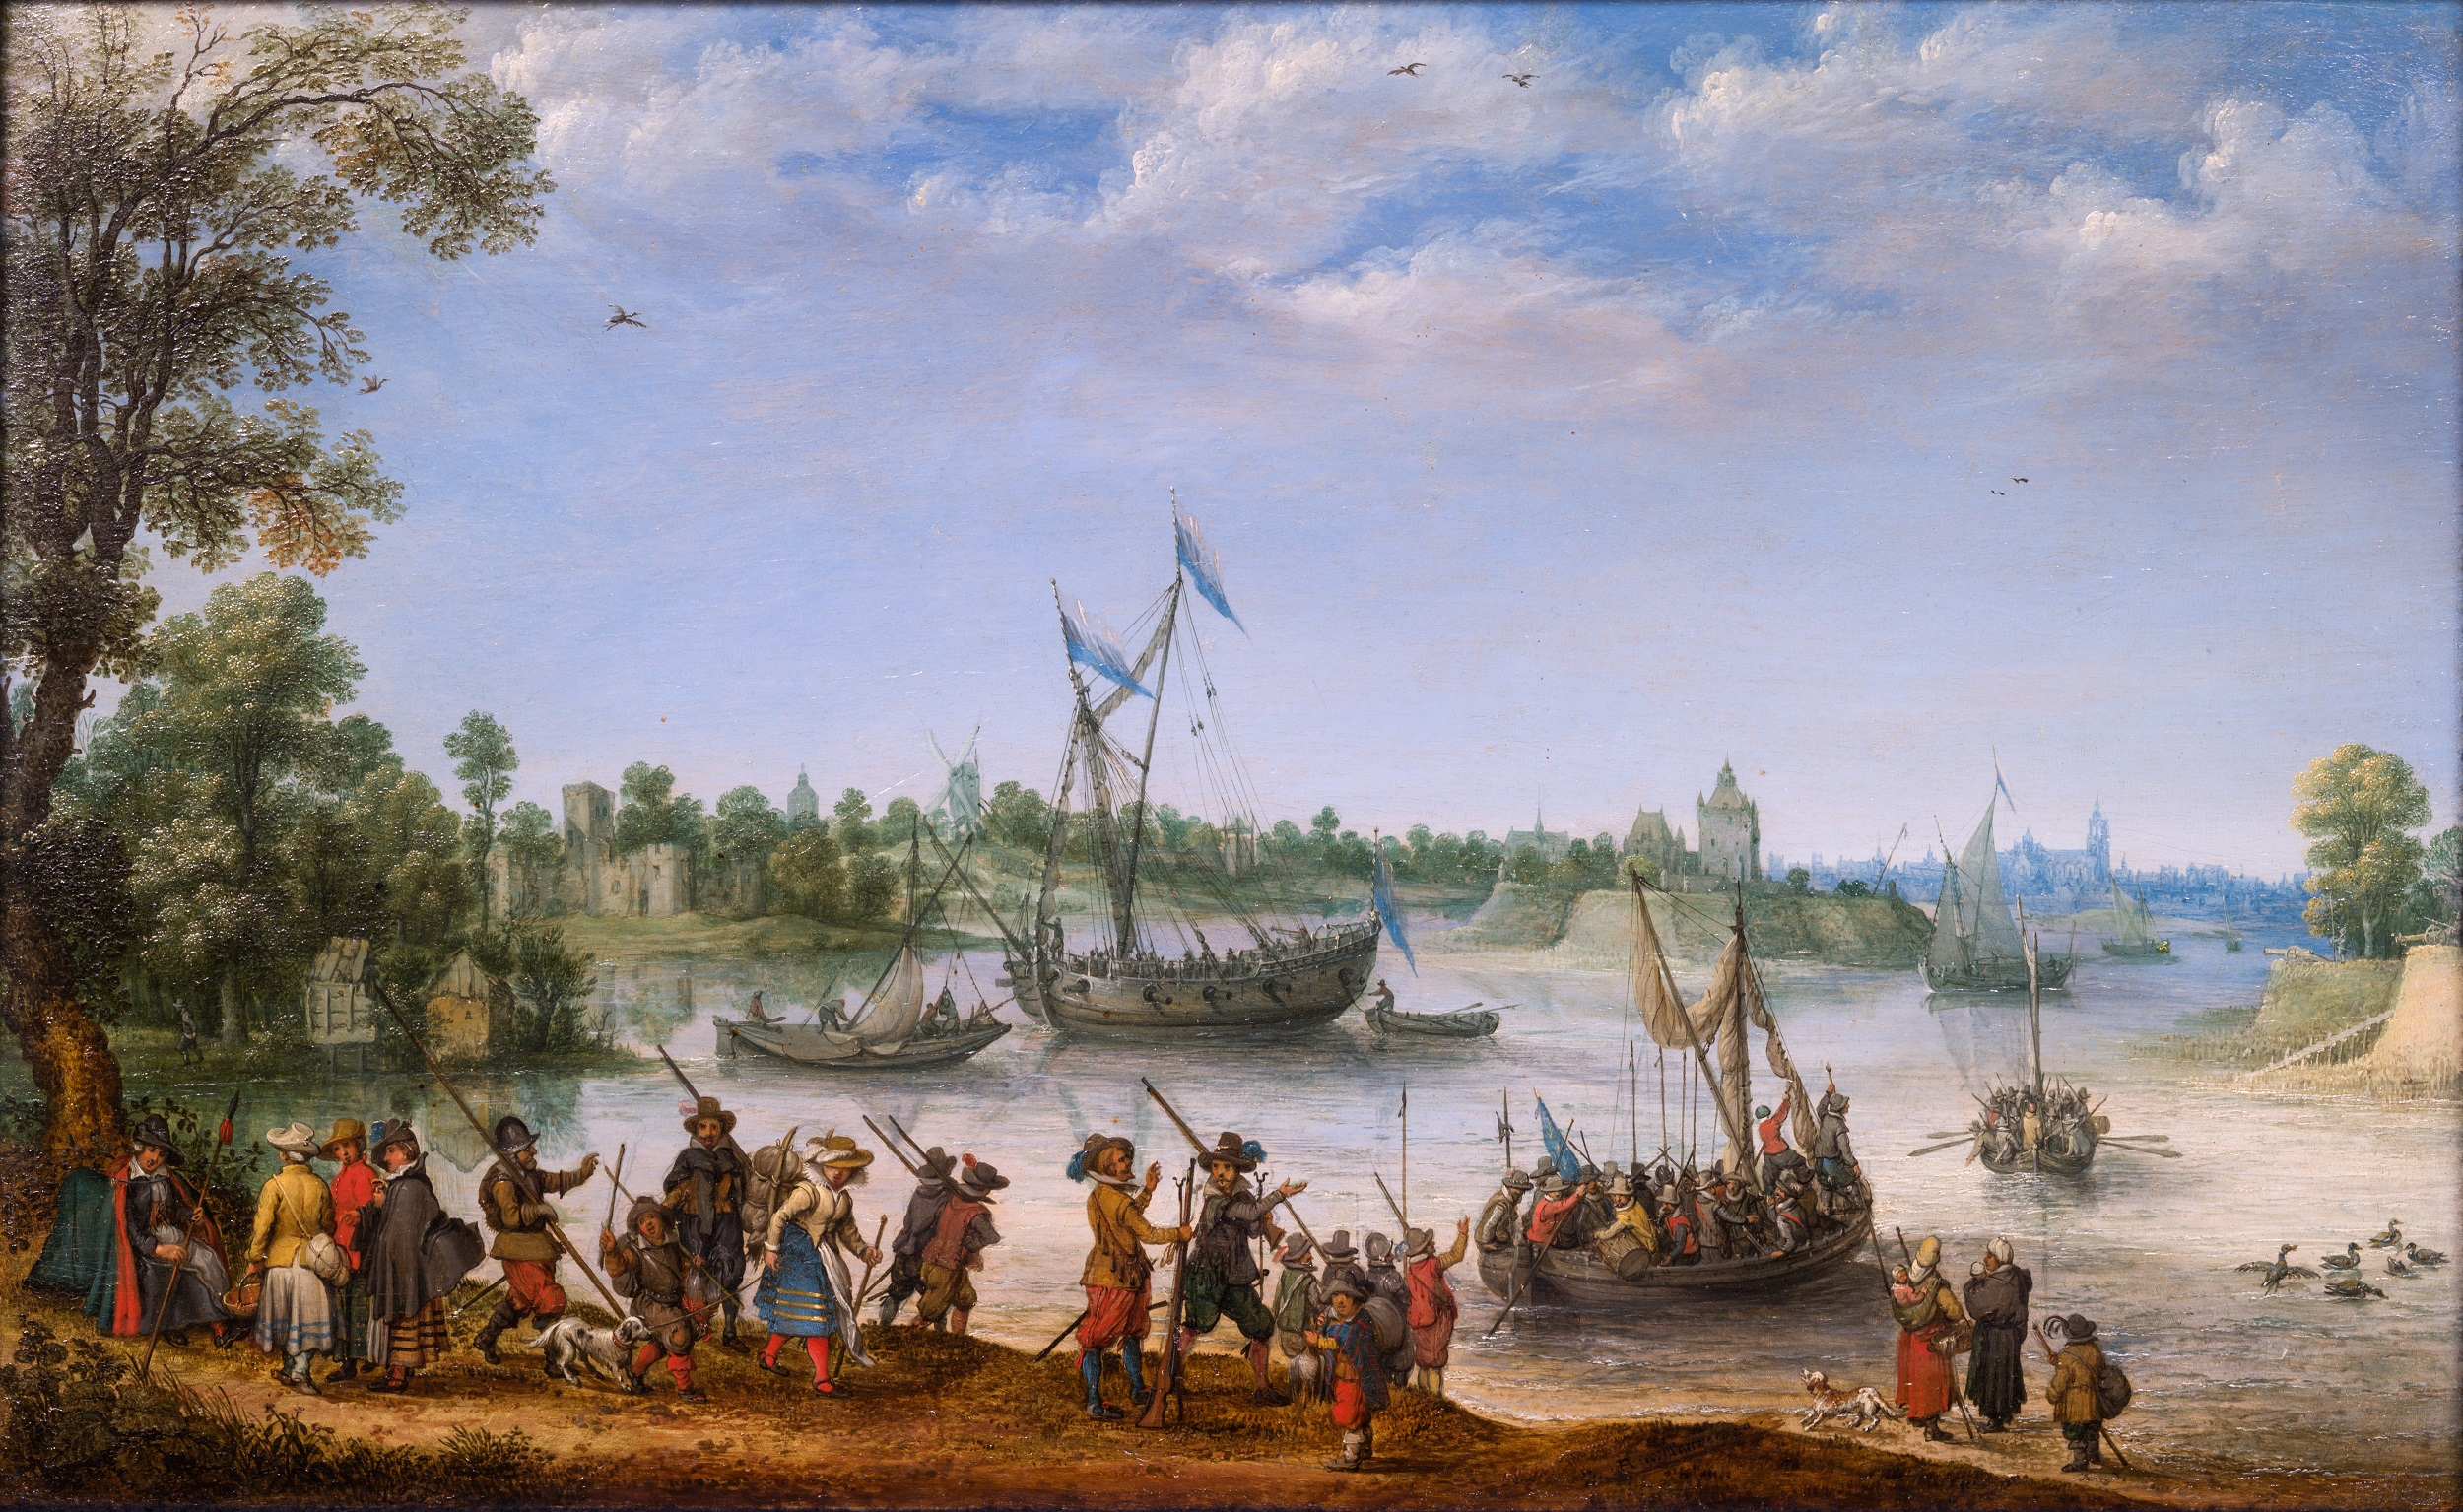 The Departure of the Pilgrim Fathers from Delfshaven on their Way to America on July 22, 1620.